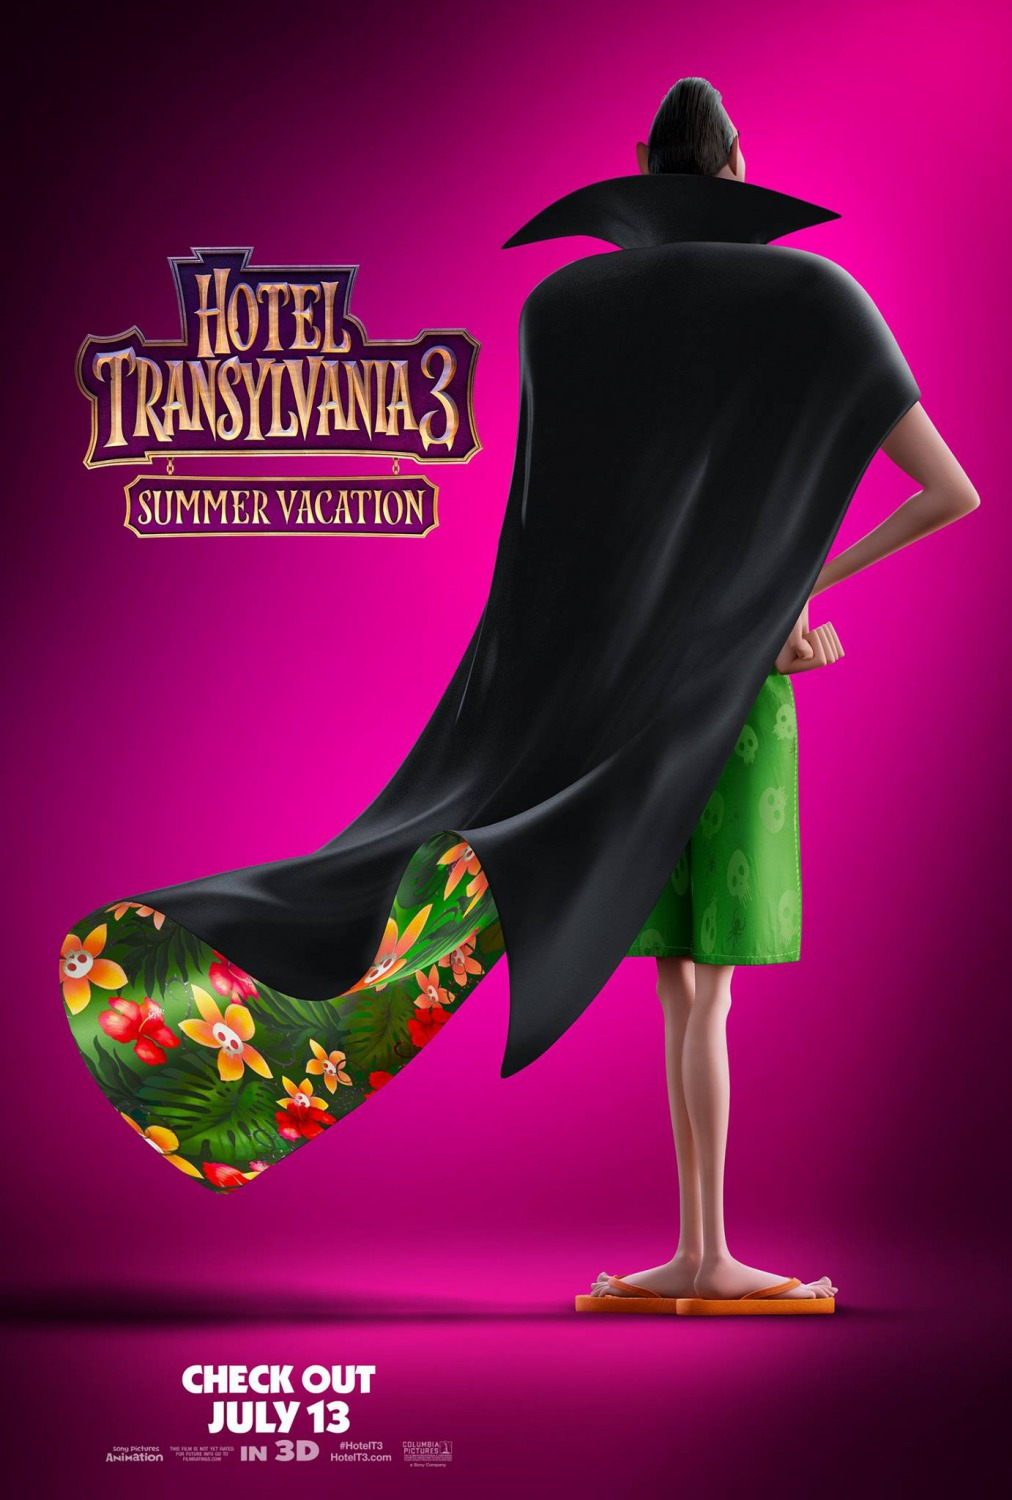 5 hotel transylvania top 25 movie posters of 2018